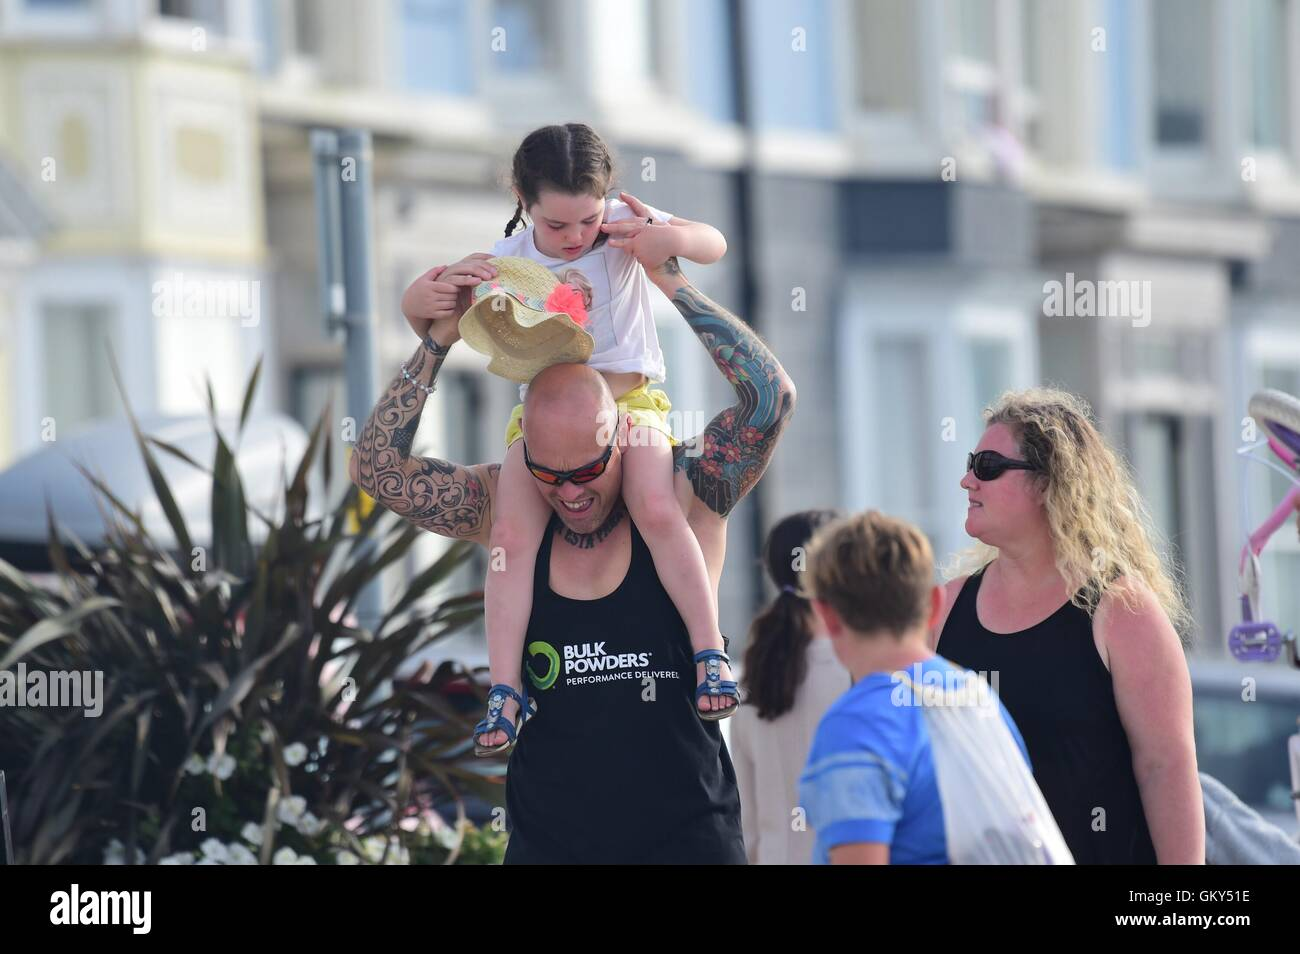 Aberystwyth Wales UK, Tuesday 23 August 2016 UK weather: People enjoying a return to warm sunny weather in Aberystwyth - Stock Image